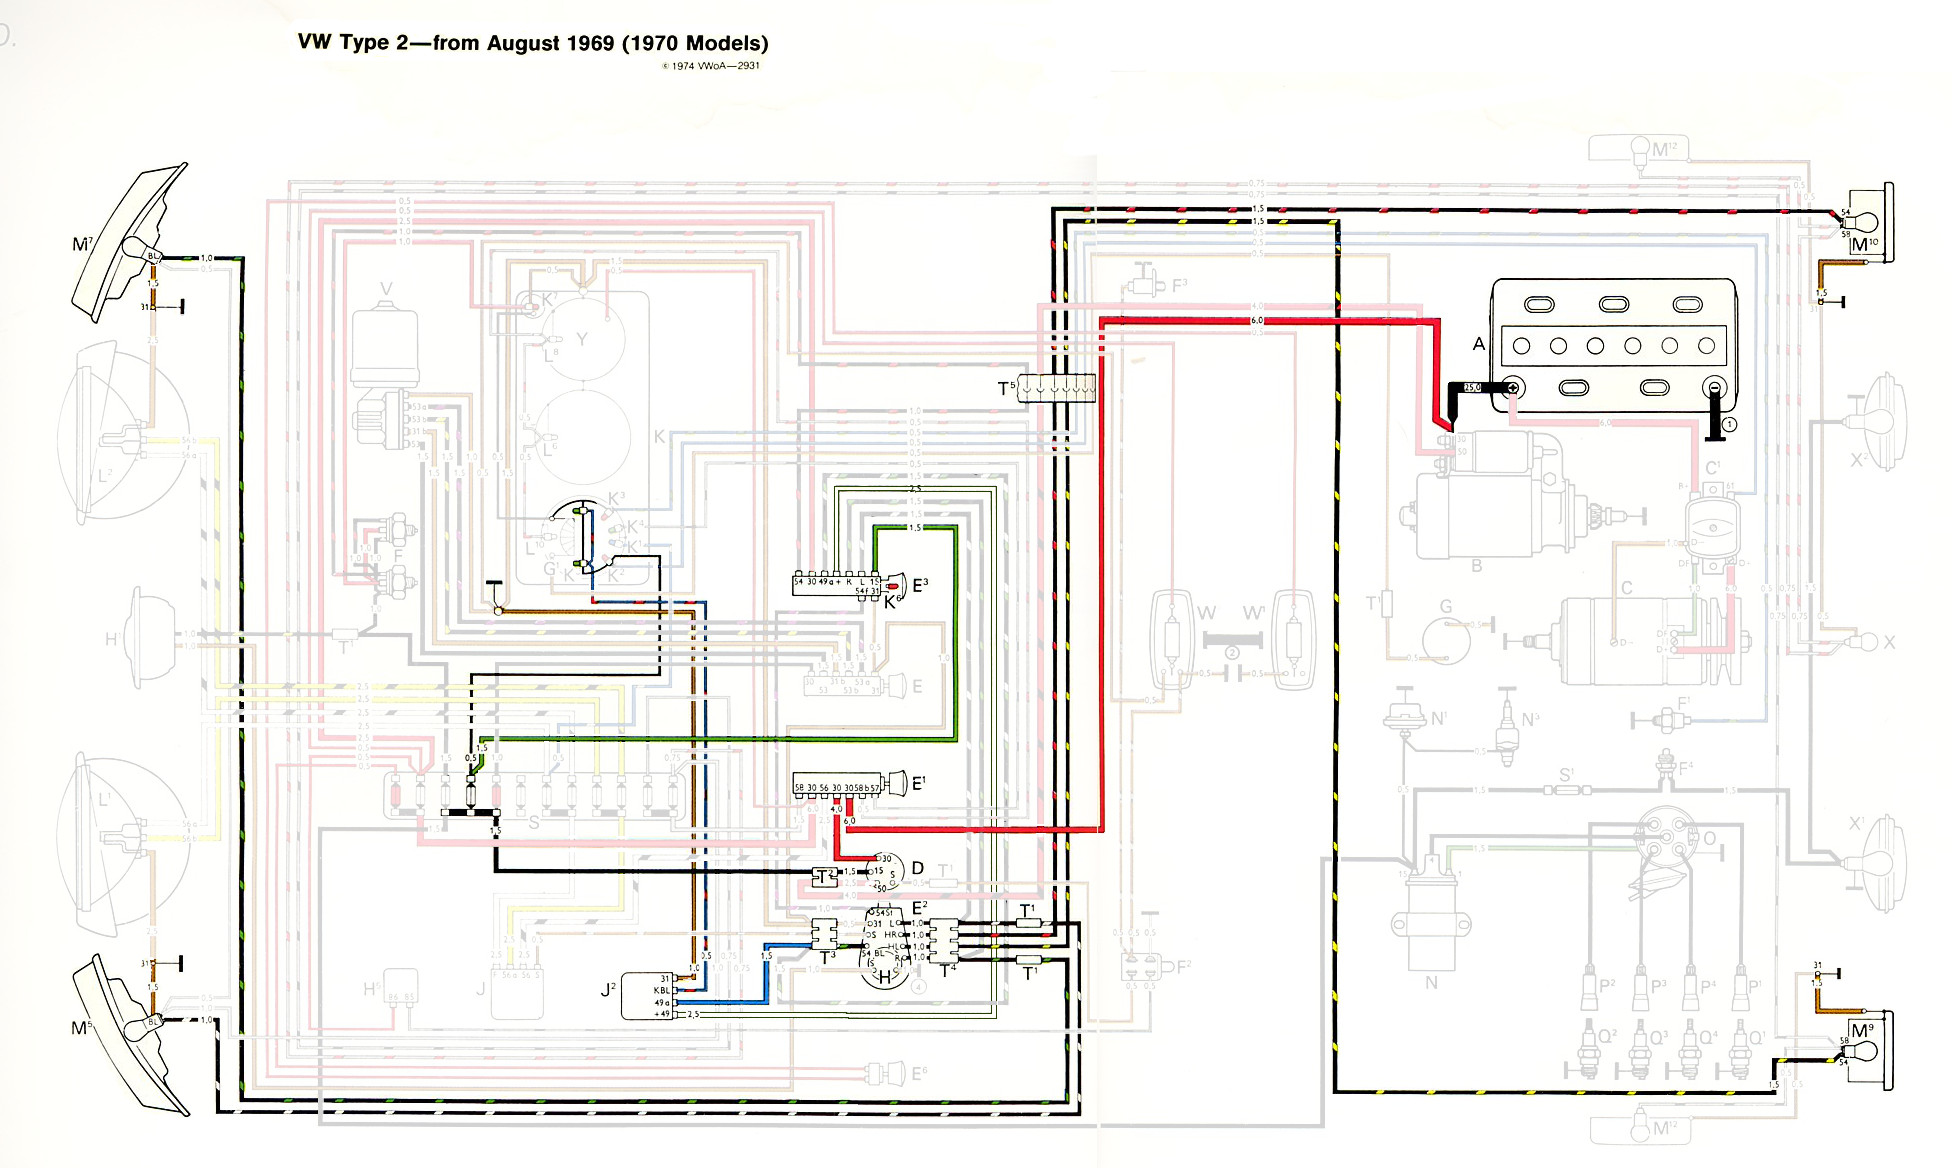 thesamba com type 2 wiring diagrams rh thesamba com Wiring Diagram Symbols Schematic Circuit Diagram